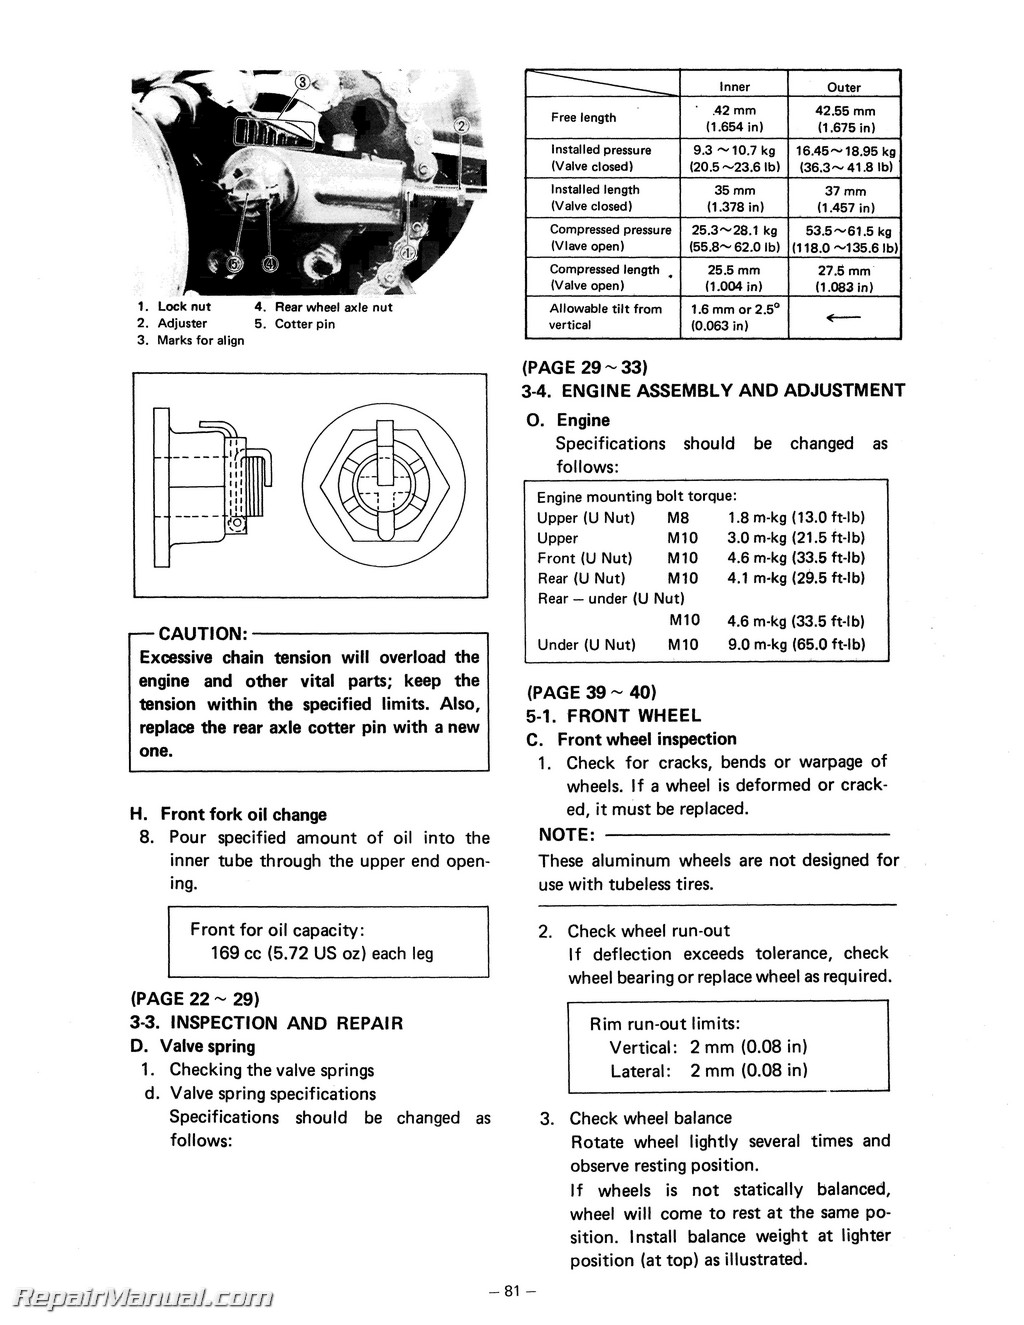 1978 – 1981 yamaha xs650 service manual 1981 xs650 engine diagram 1981 chevy van engine diagram